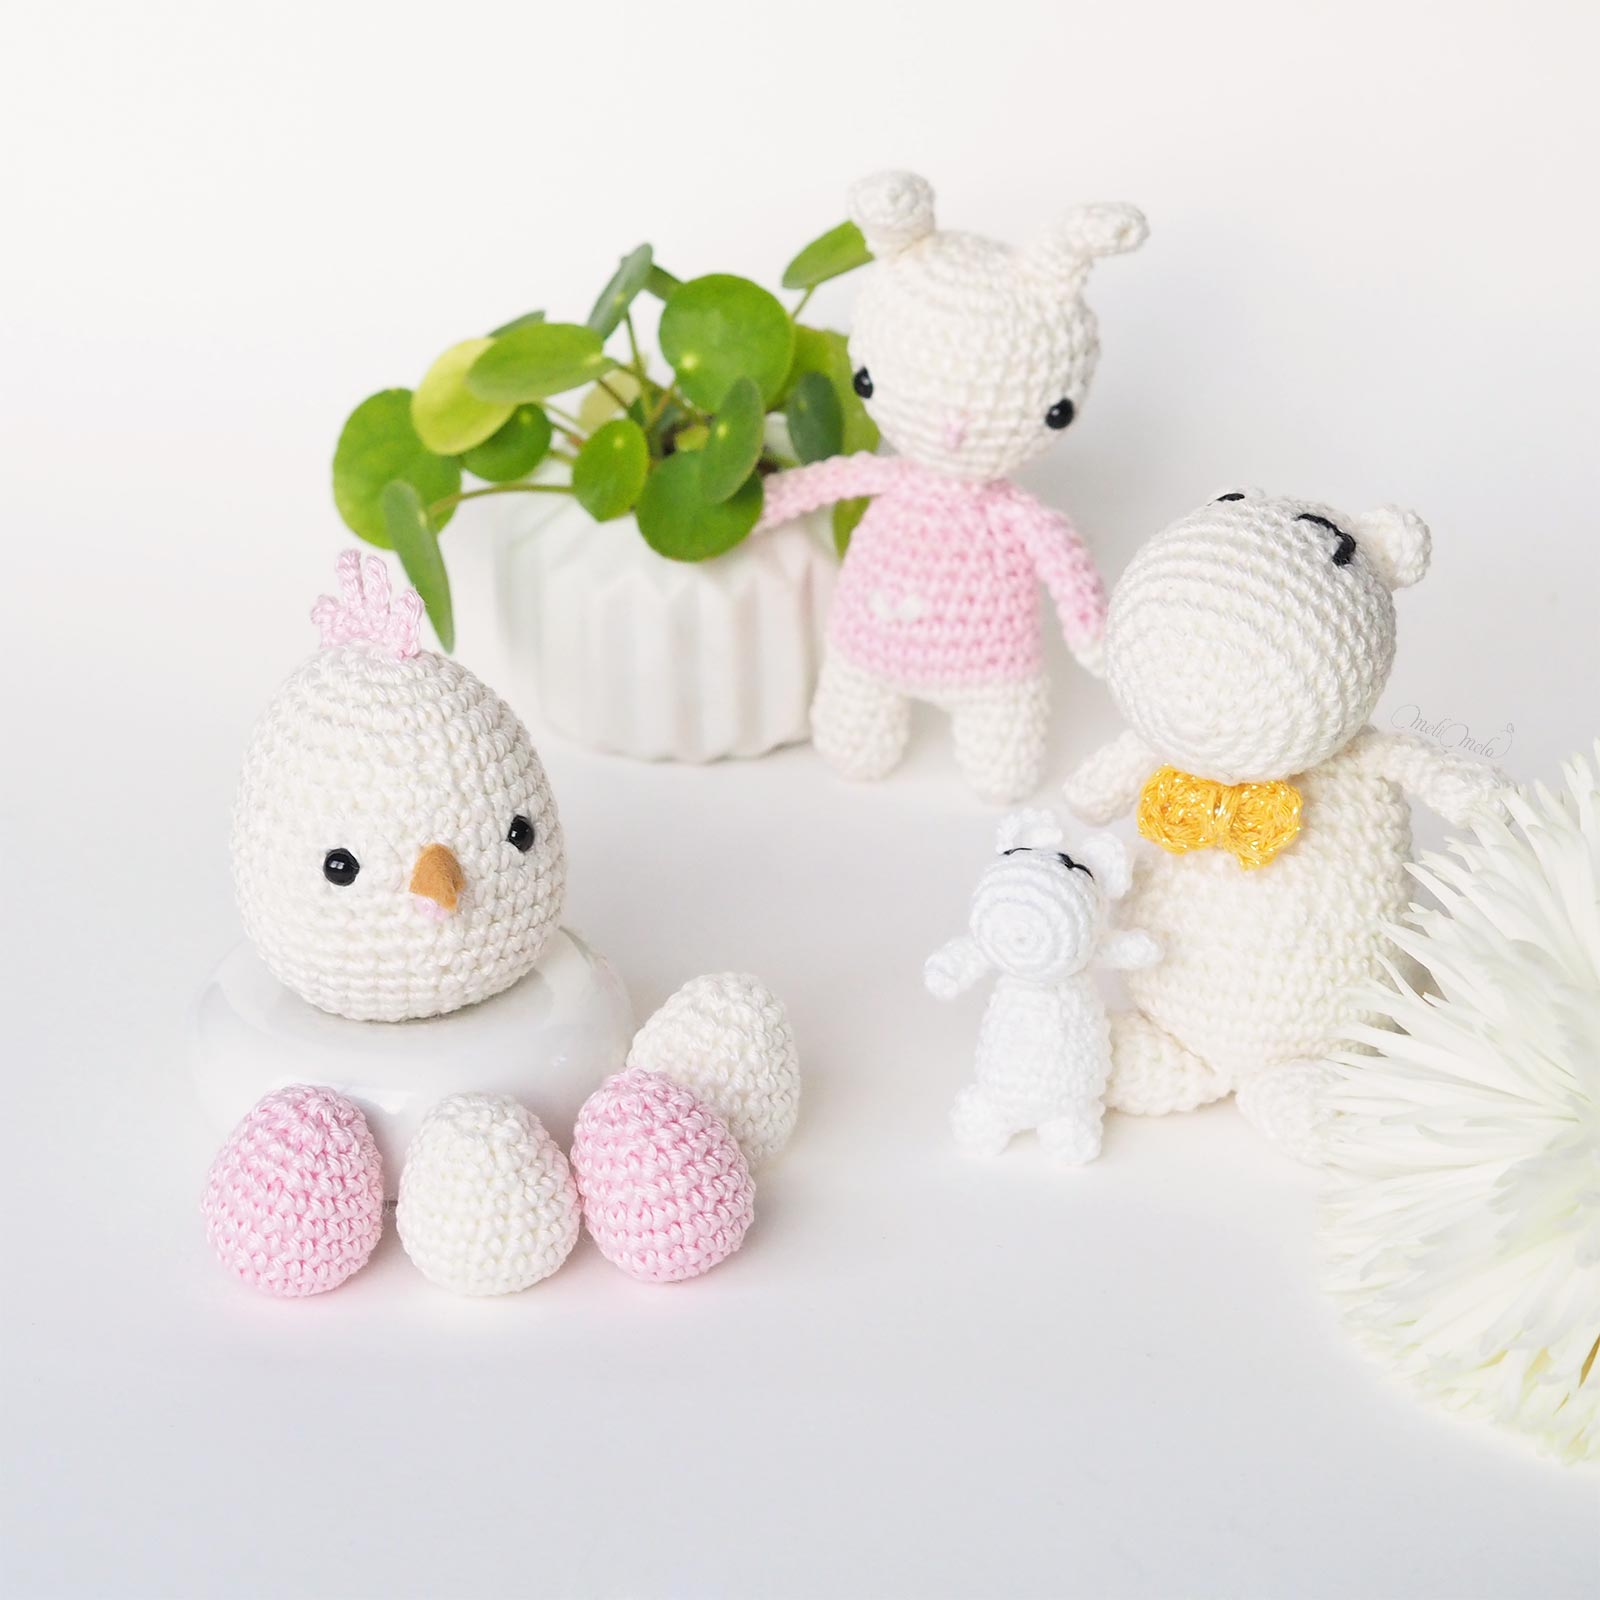 lapin oeuf Moomin crochet pâques Catona Scheeepjes pilea boutures laboutiquedemelimelo